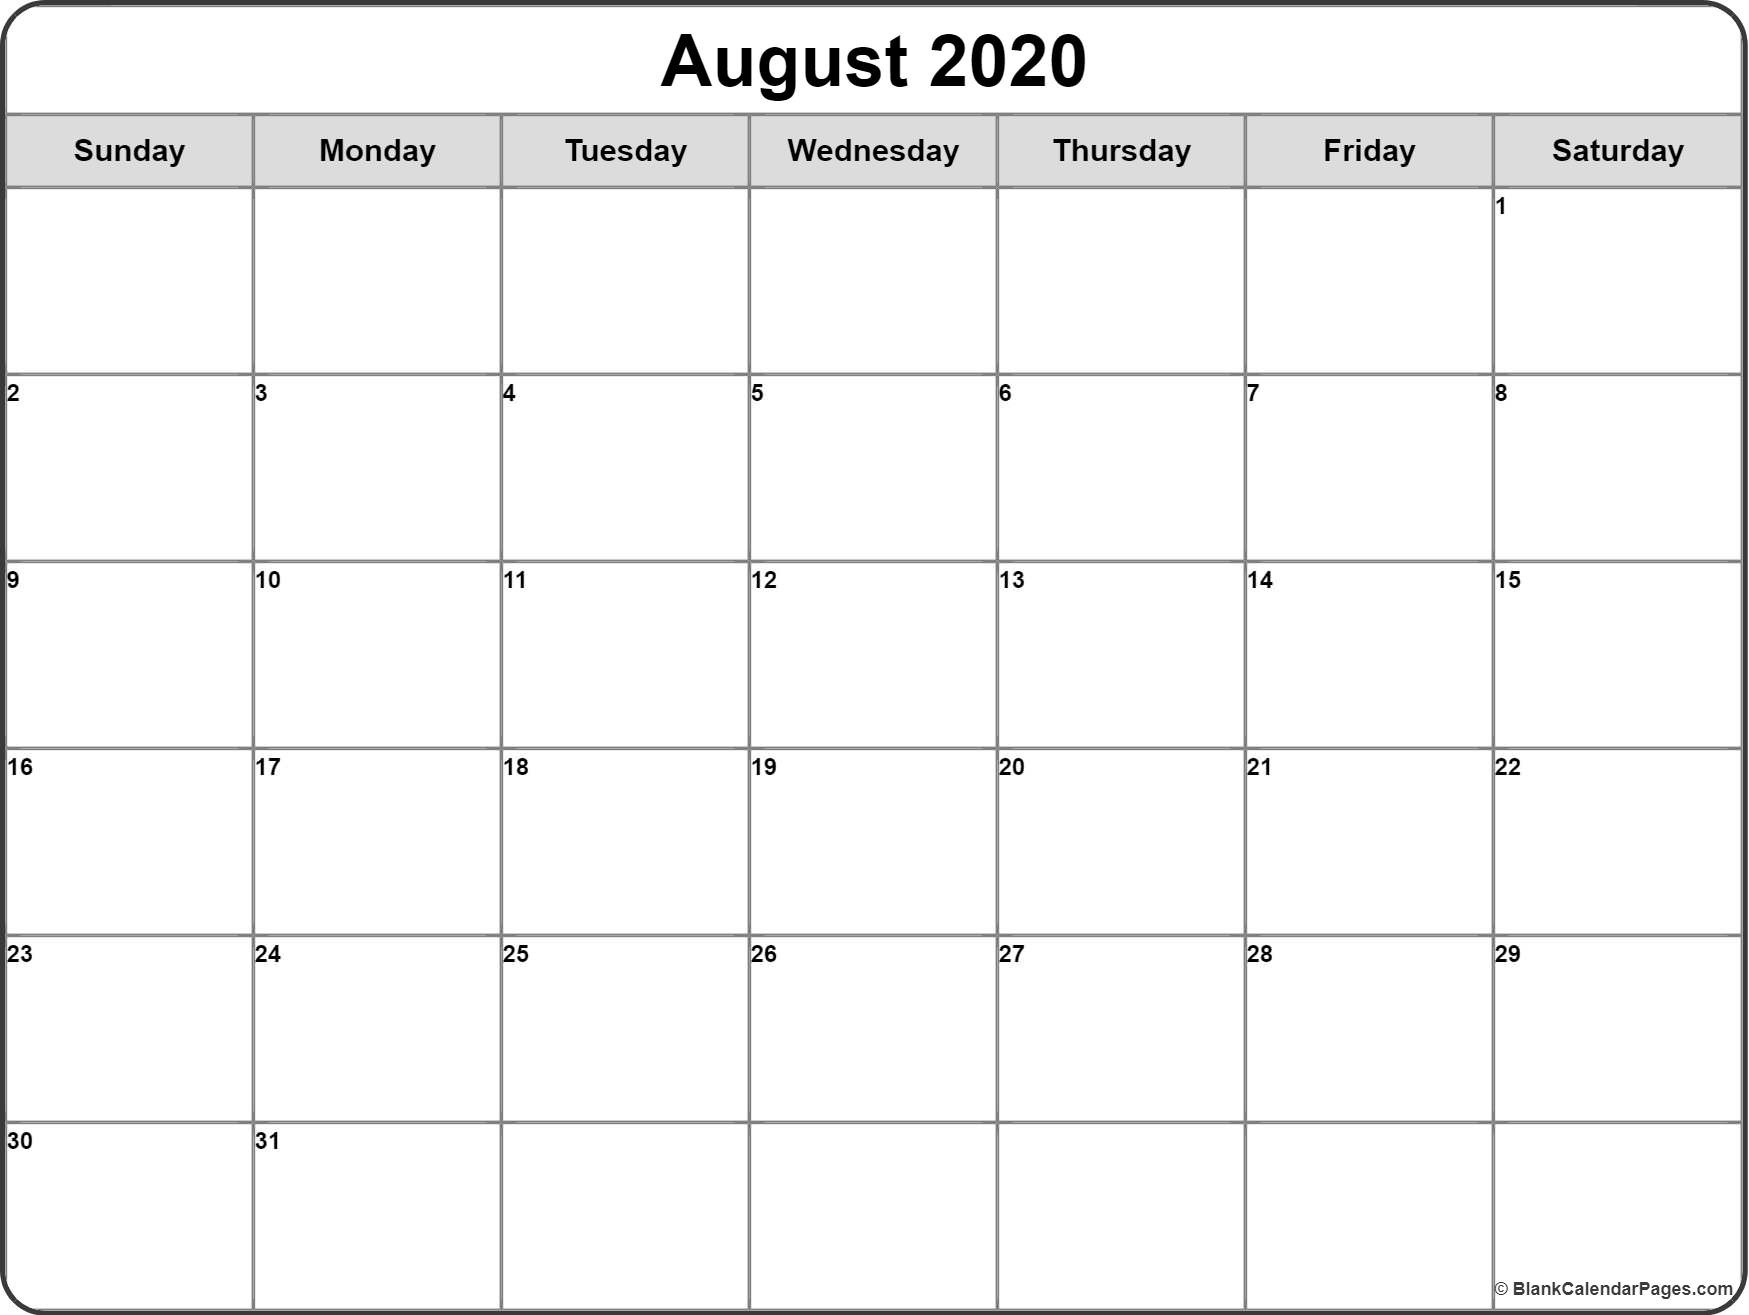 August 2020 Calendar | Free Printable Monthly Calendars-Blank Calendar For August 2020/monday-Friday